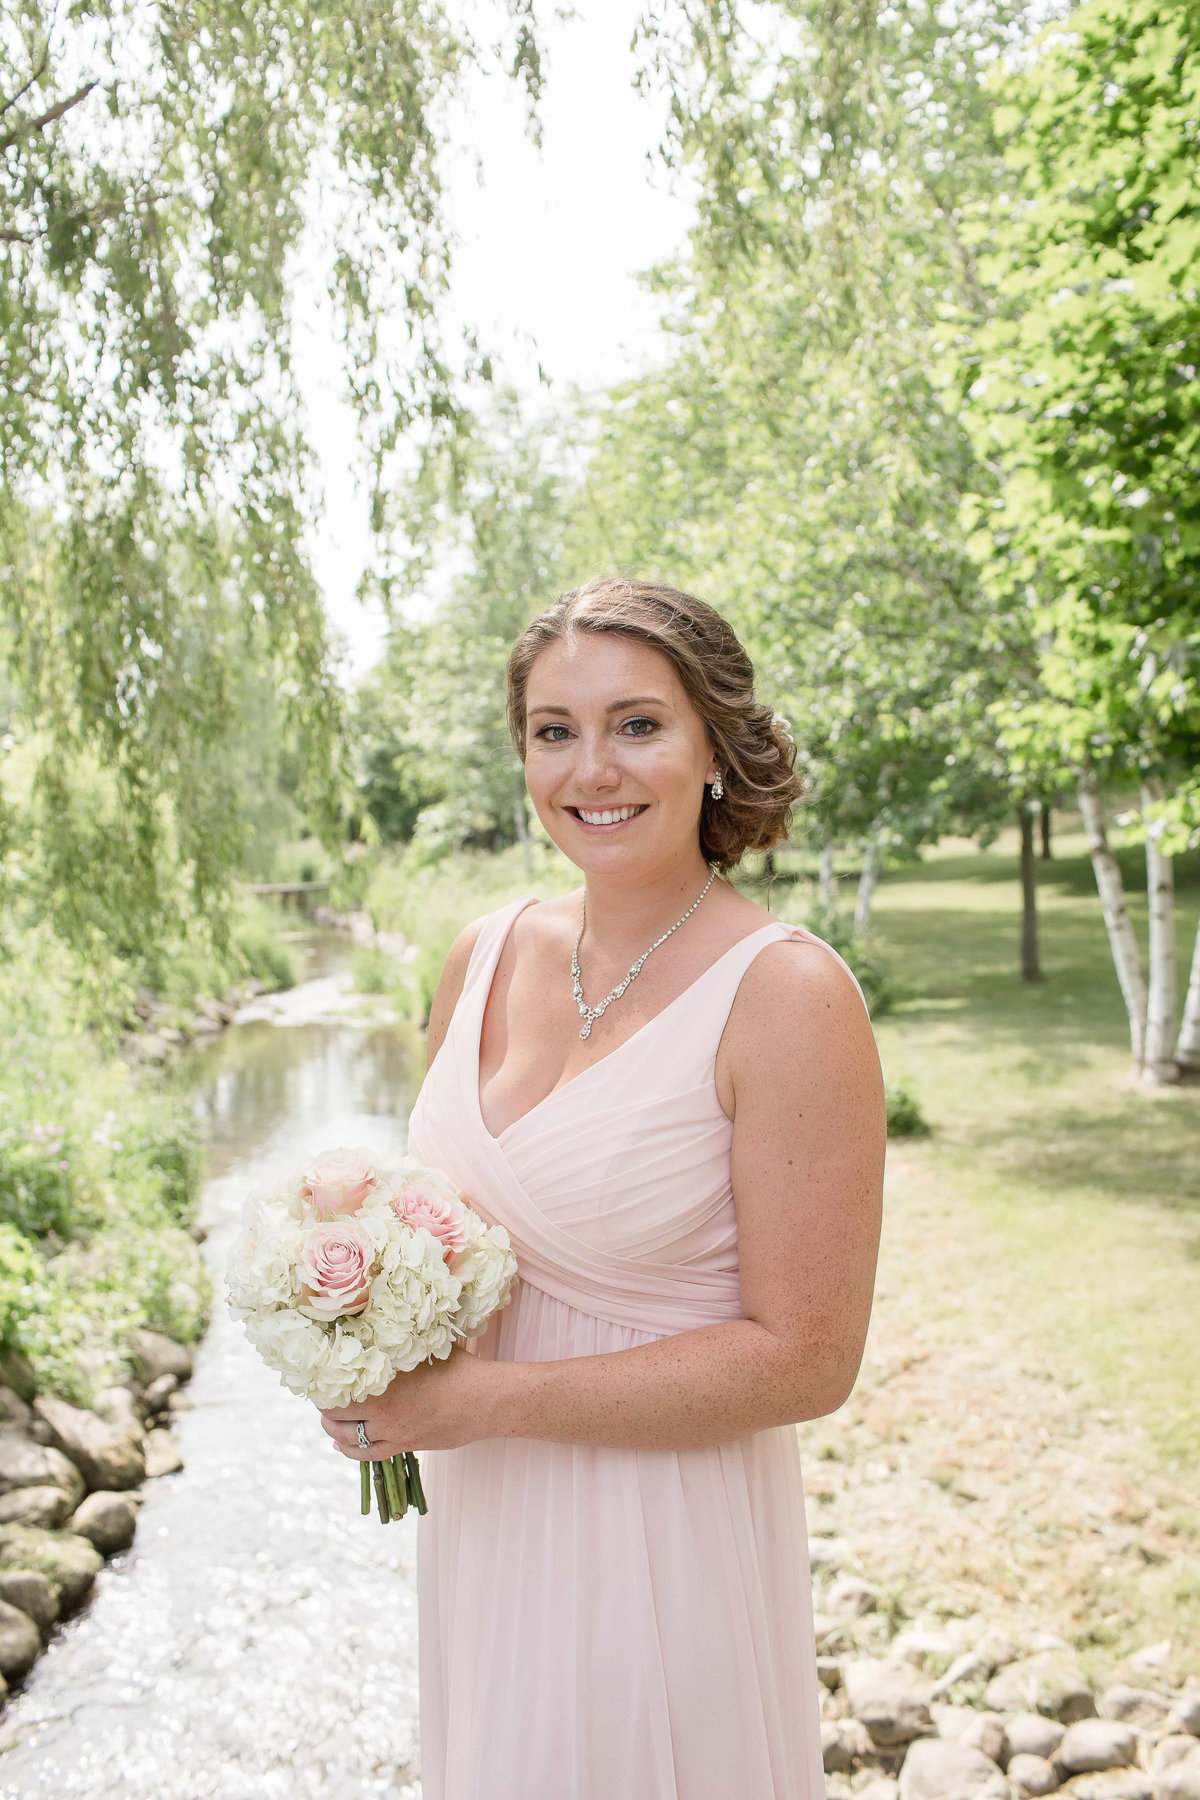 Toronto Ontario Wedding Photographer - Silver Linings Photography-13